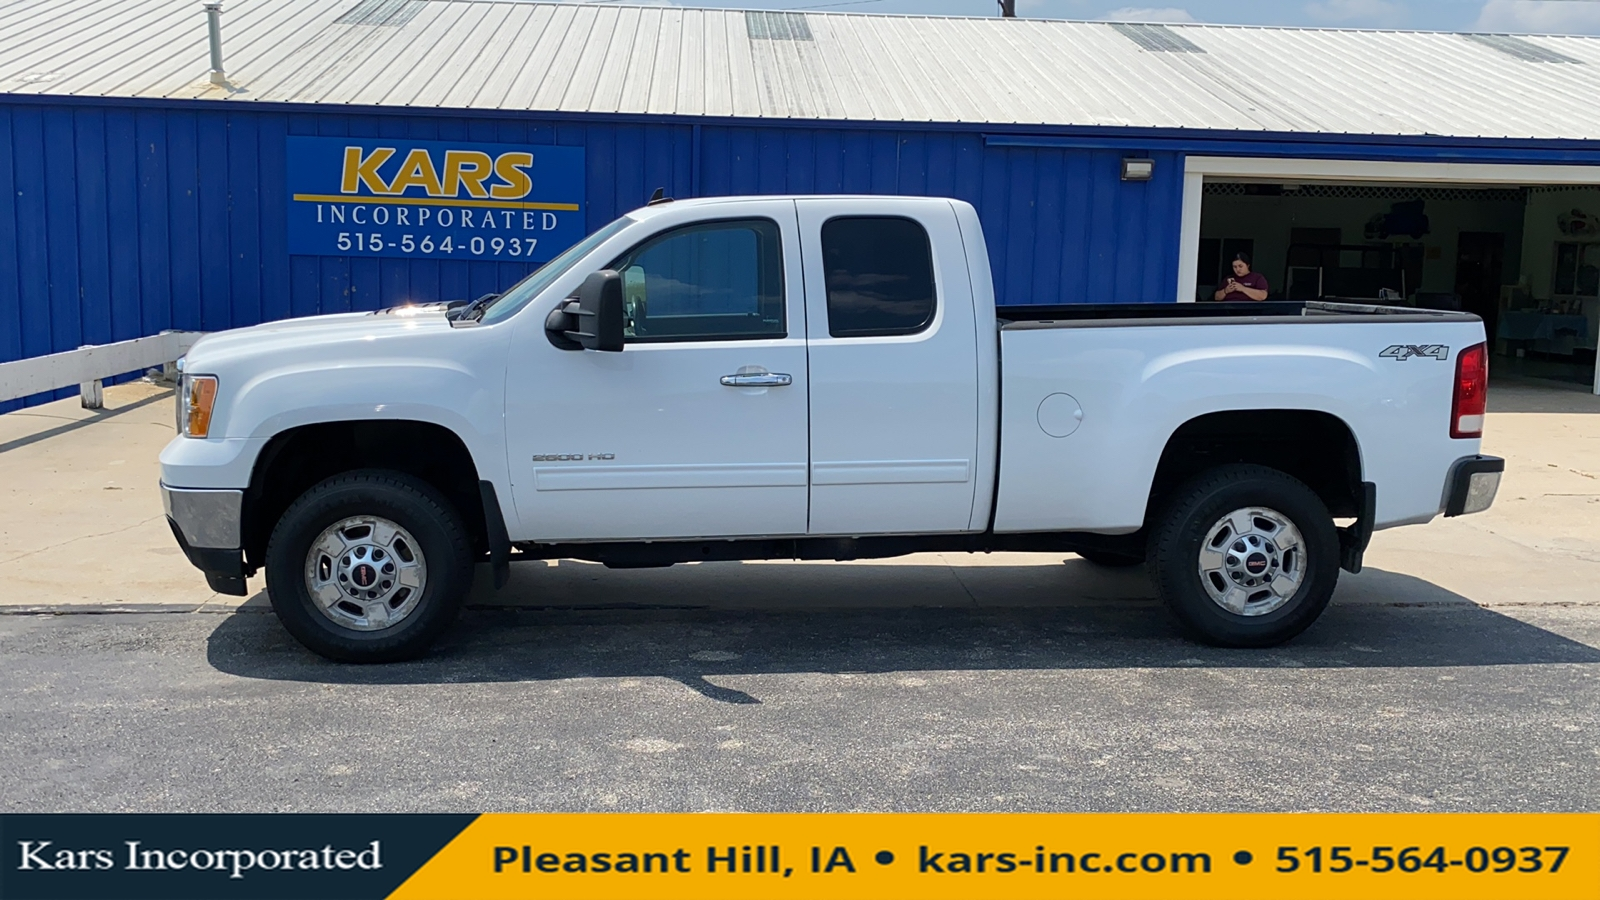 2013 GMC Sierra 2500HD 2500 SLE 4WD Extended Cab  - D53440P  - Kars Incorporated